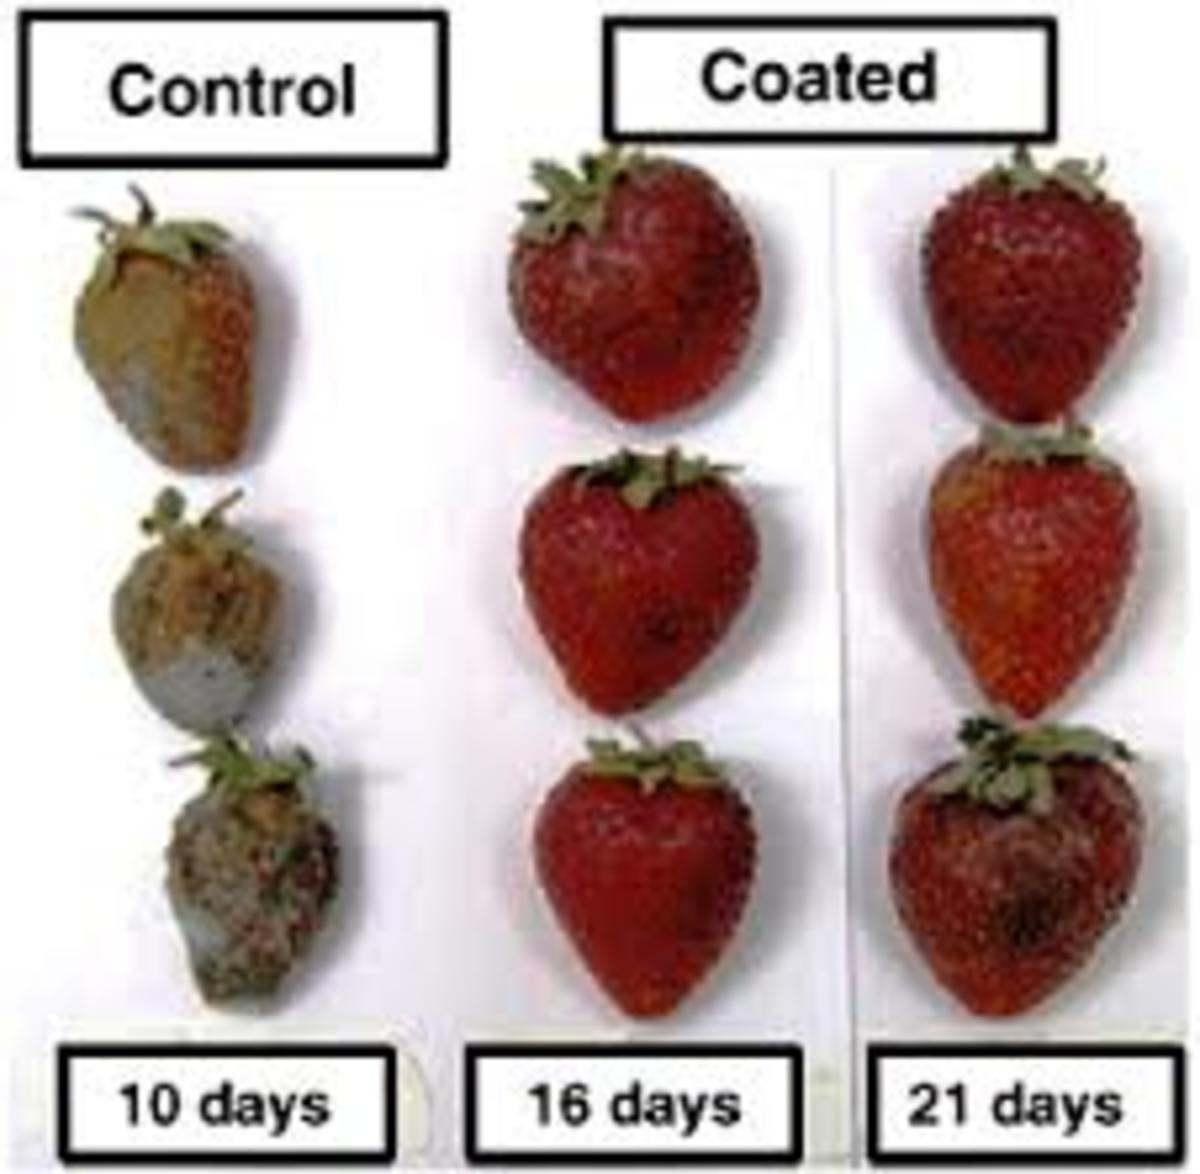 Example of edible coating on strawberries which improves their shelf life